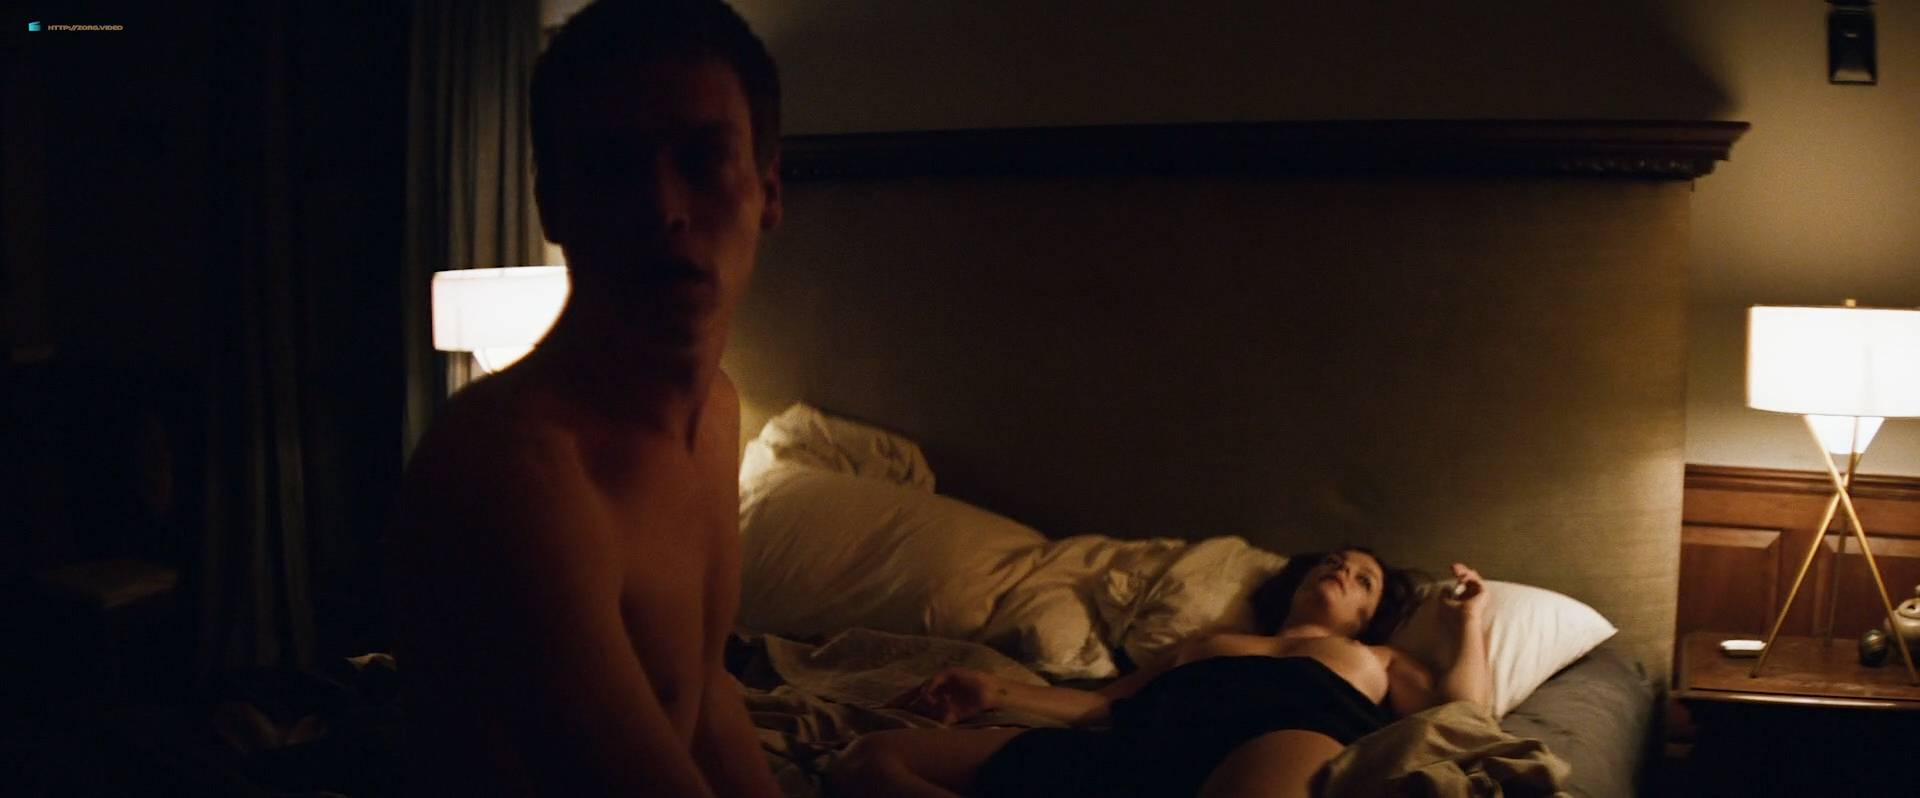 Riley-Keough-nude-topless-and-sex-Abbey-Lee-Kershaw-nude-butt-Welcome-the-Stranger-2018-HD-1080p-Web-012.jpg